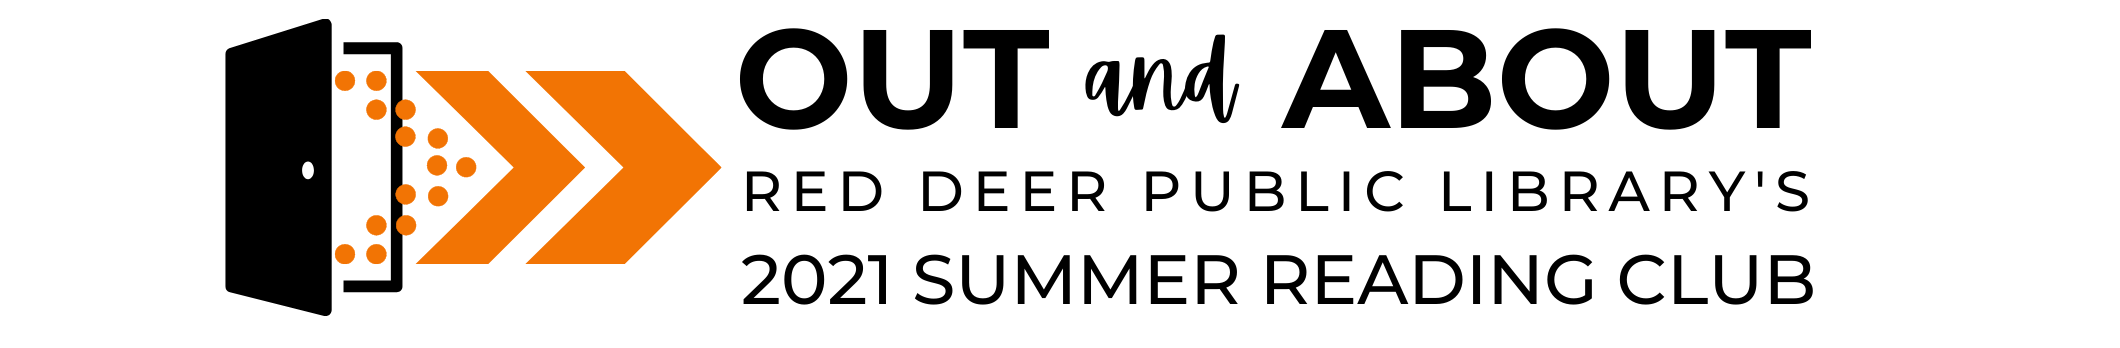 Out & About: Red Deer Public Library's 2021 Summer Reading Club